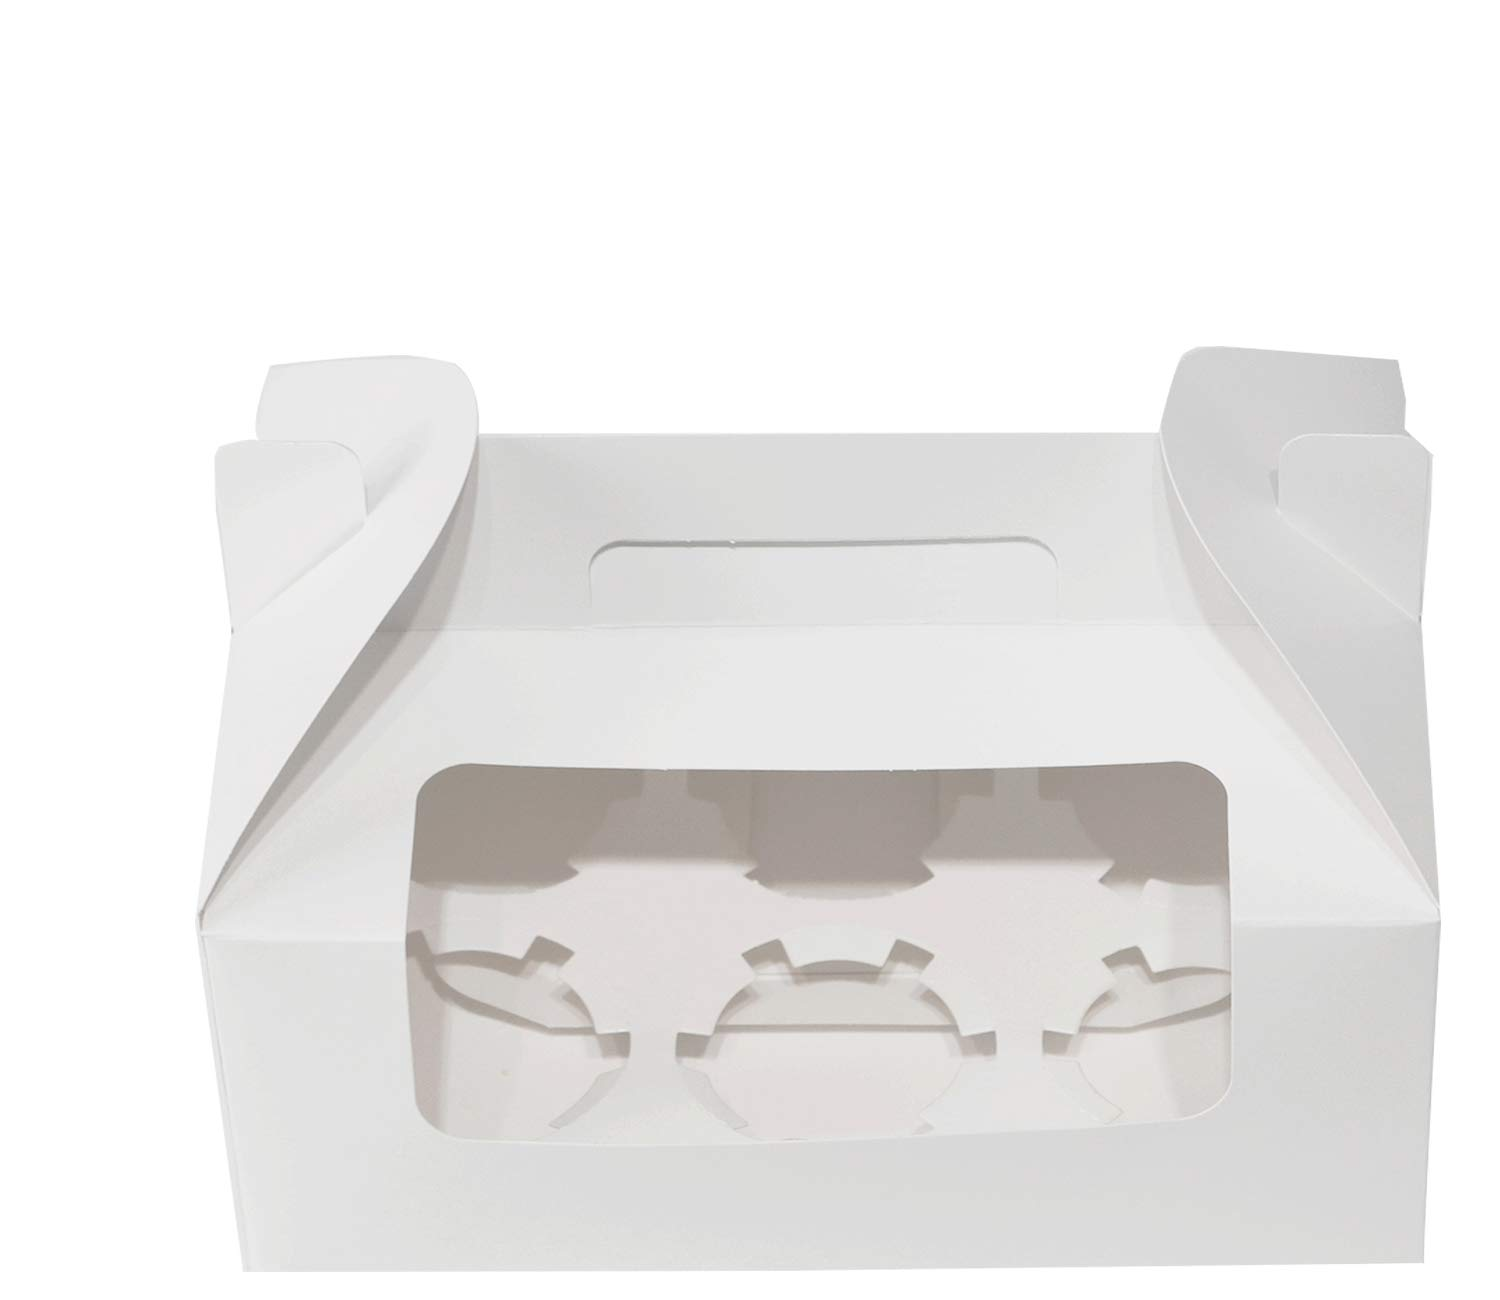 9 inch x 5.9 inch x 3.5 inch Cupcake Boxes Cupcake Box with Handle Cupcake Gift Boxes for 6 Container with Display Window Cupcake Packaging Boxes Cupcake Containers (White,30 PCS) by Sahara Home